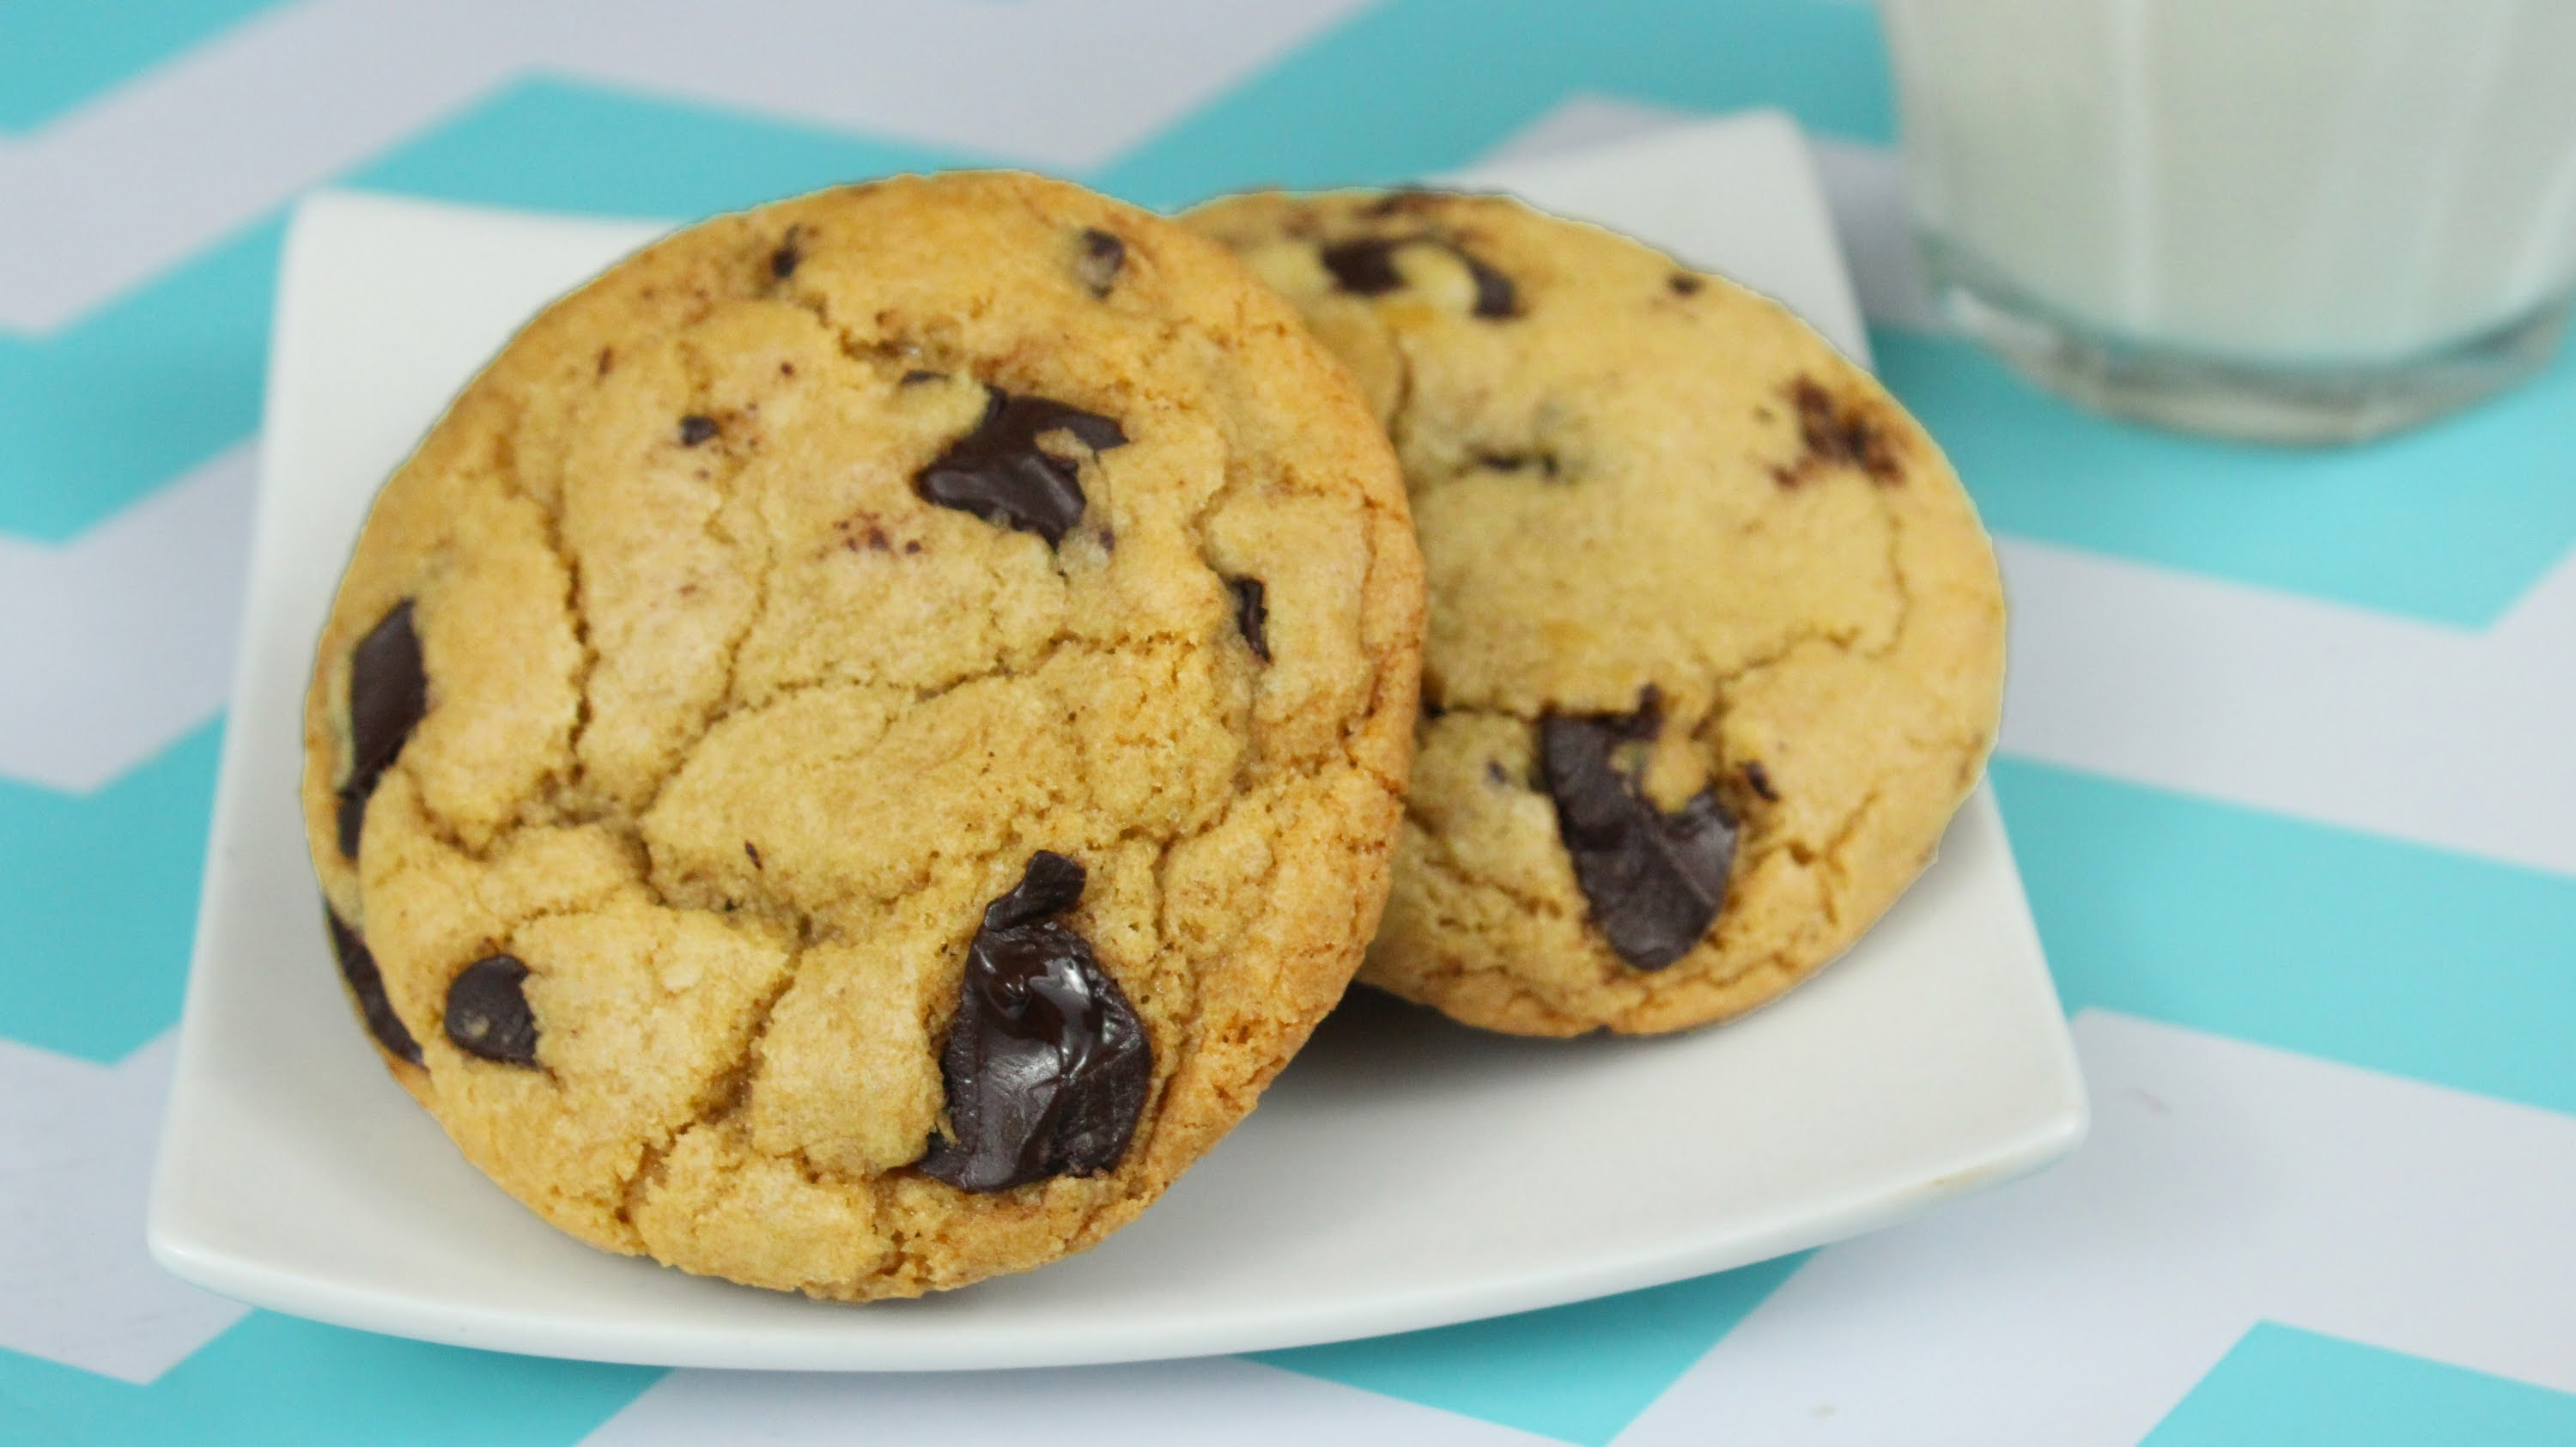 How To Make The Best Chocolate Chip Cookies Kawaiisweetworld